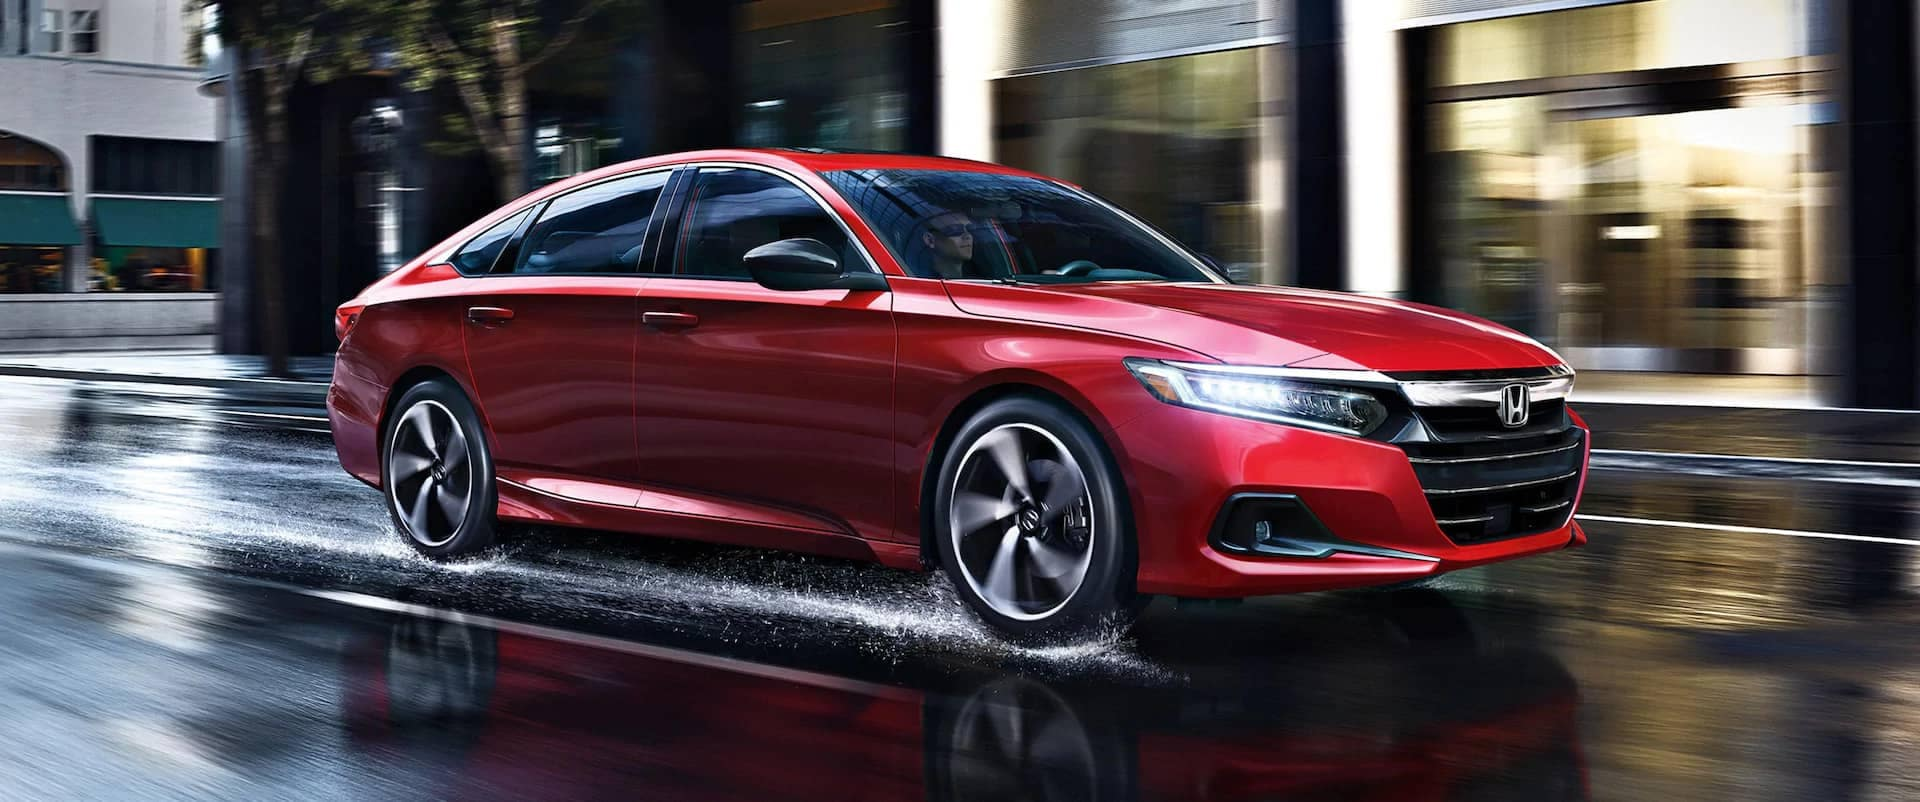 2021-Honda-Accord-Hybrid speeds on city street